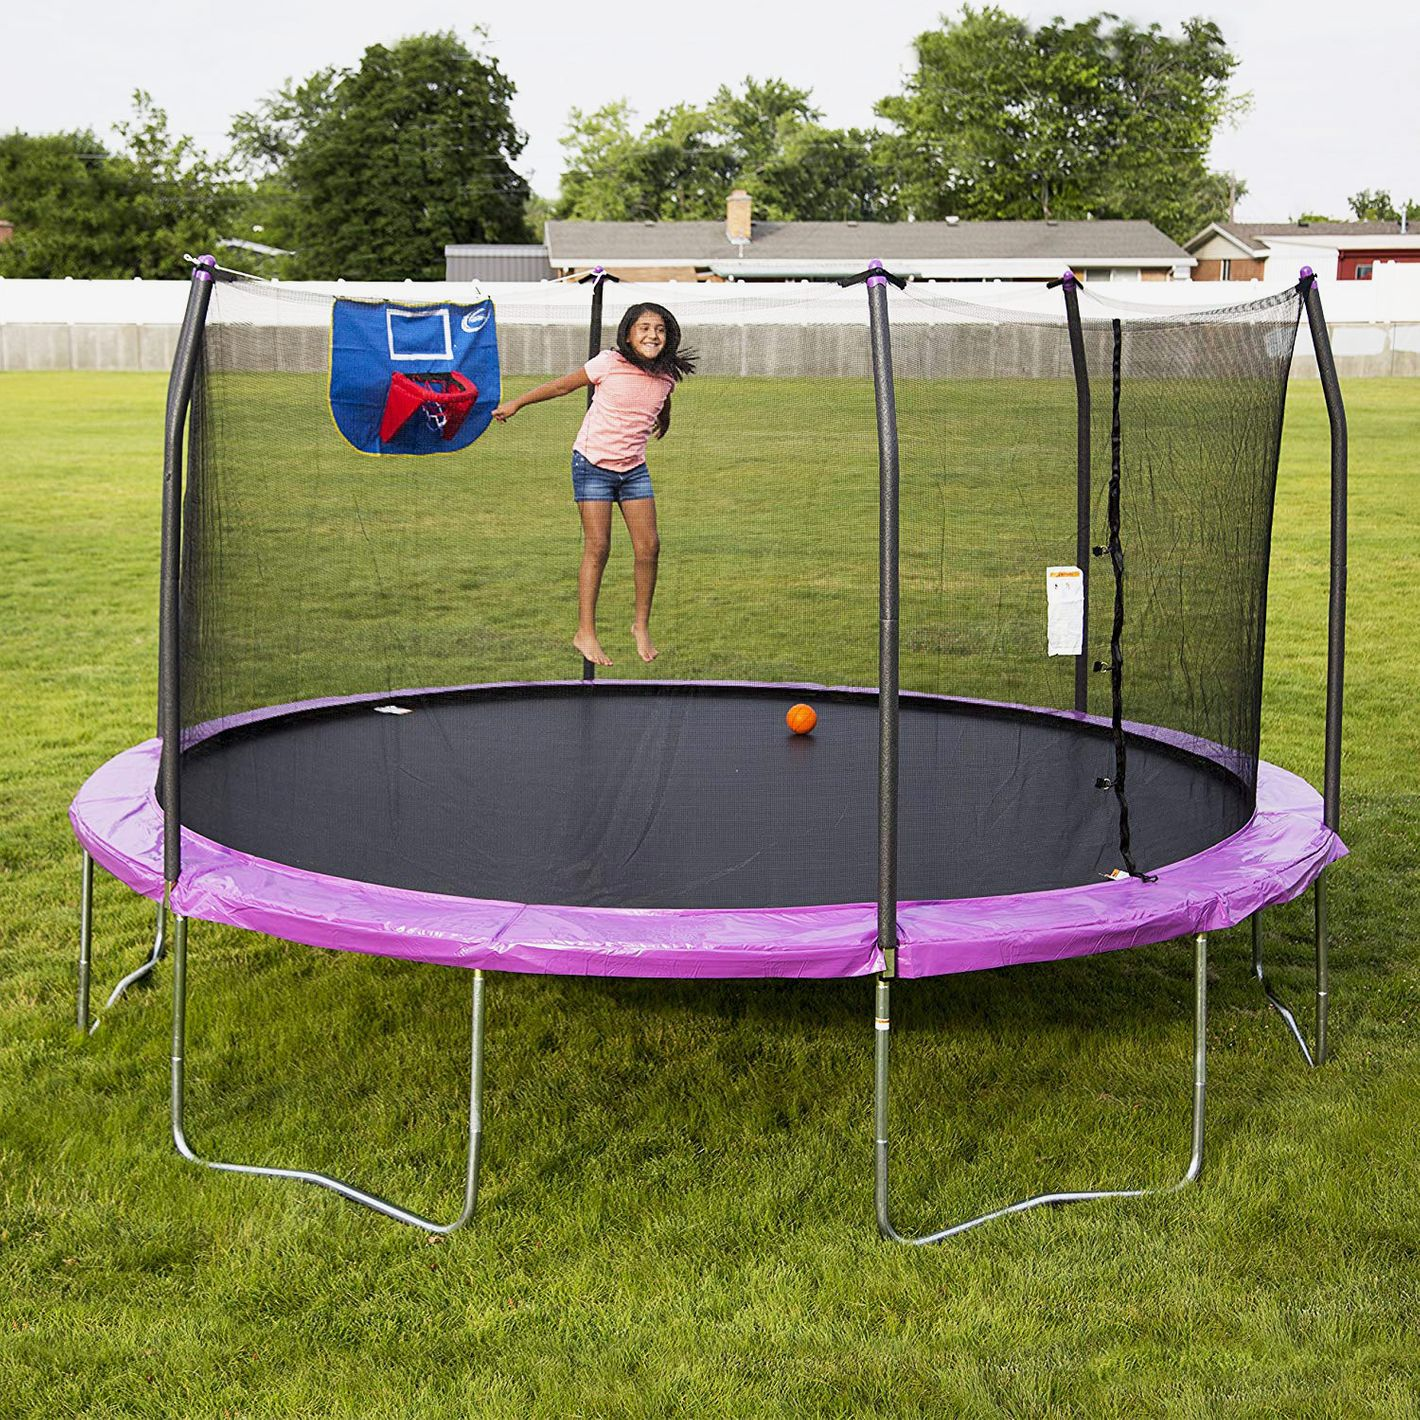 Kidwise Jumpfree 15 Ft Trampoline And Safety Enclosure: The 10 Best Trampolines 2018